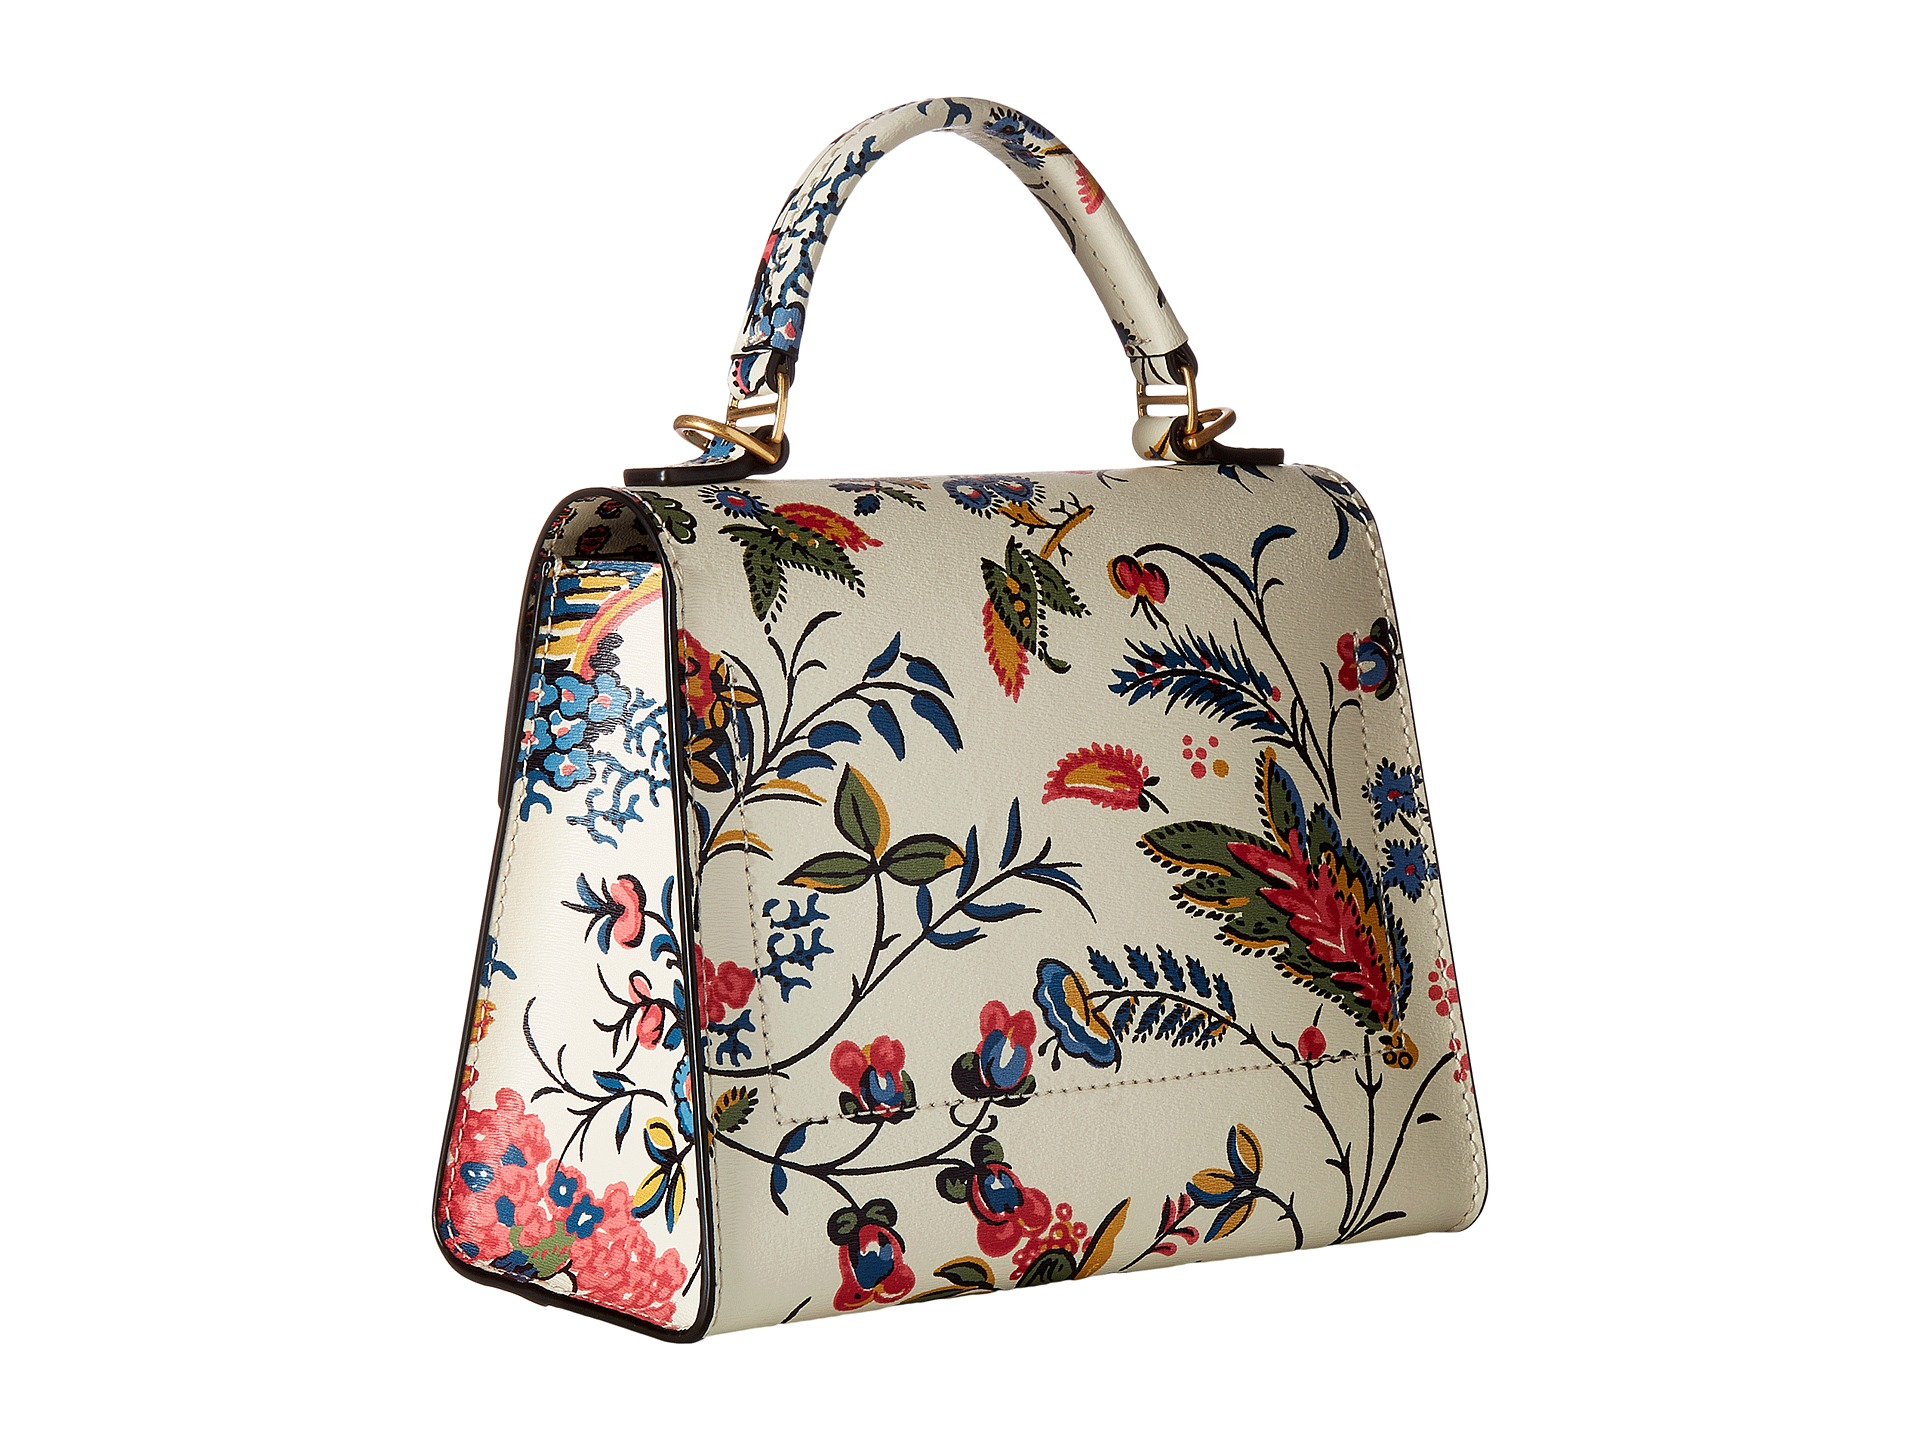 Tory Burch Parker Floral Small Satchel Gabriella Floral - Zappos.com Free Shipping BOTH Ways